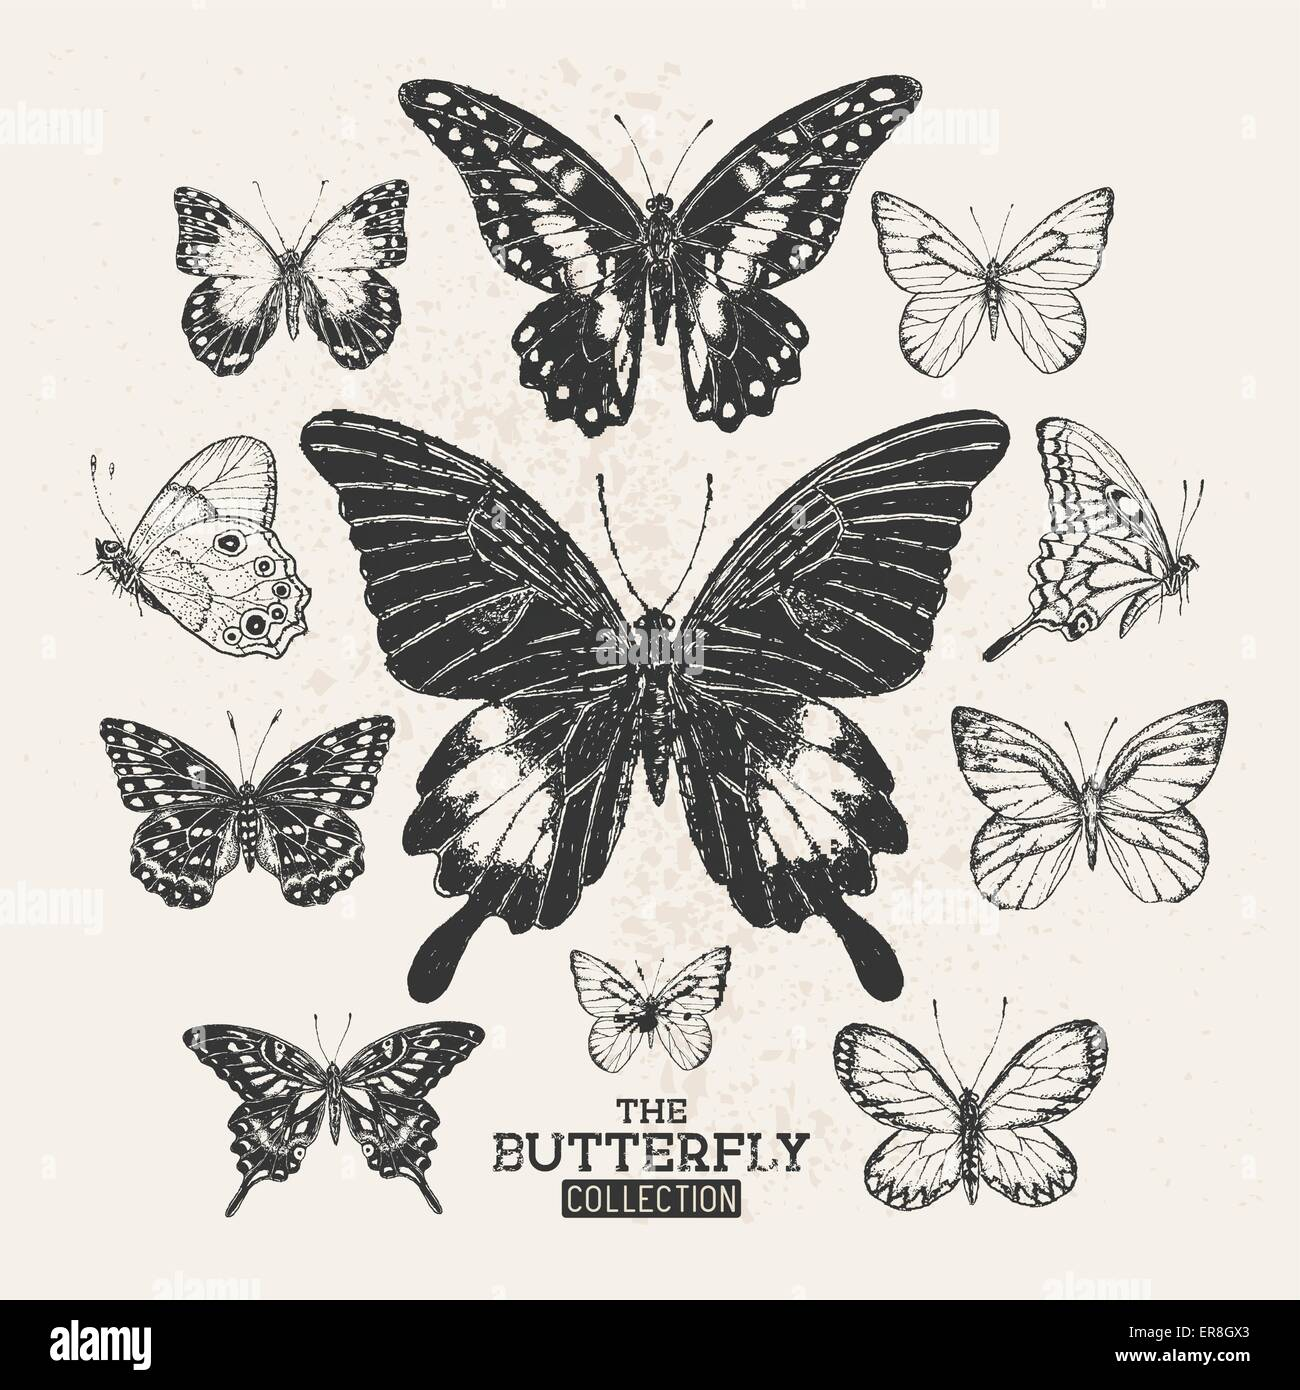 The Butterfly Collection. A collection of hand drawn butterflies, vintage set. Vector illustration. - Stock Image